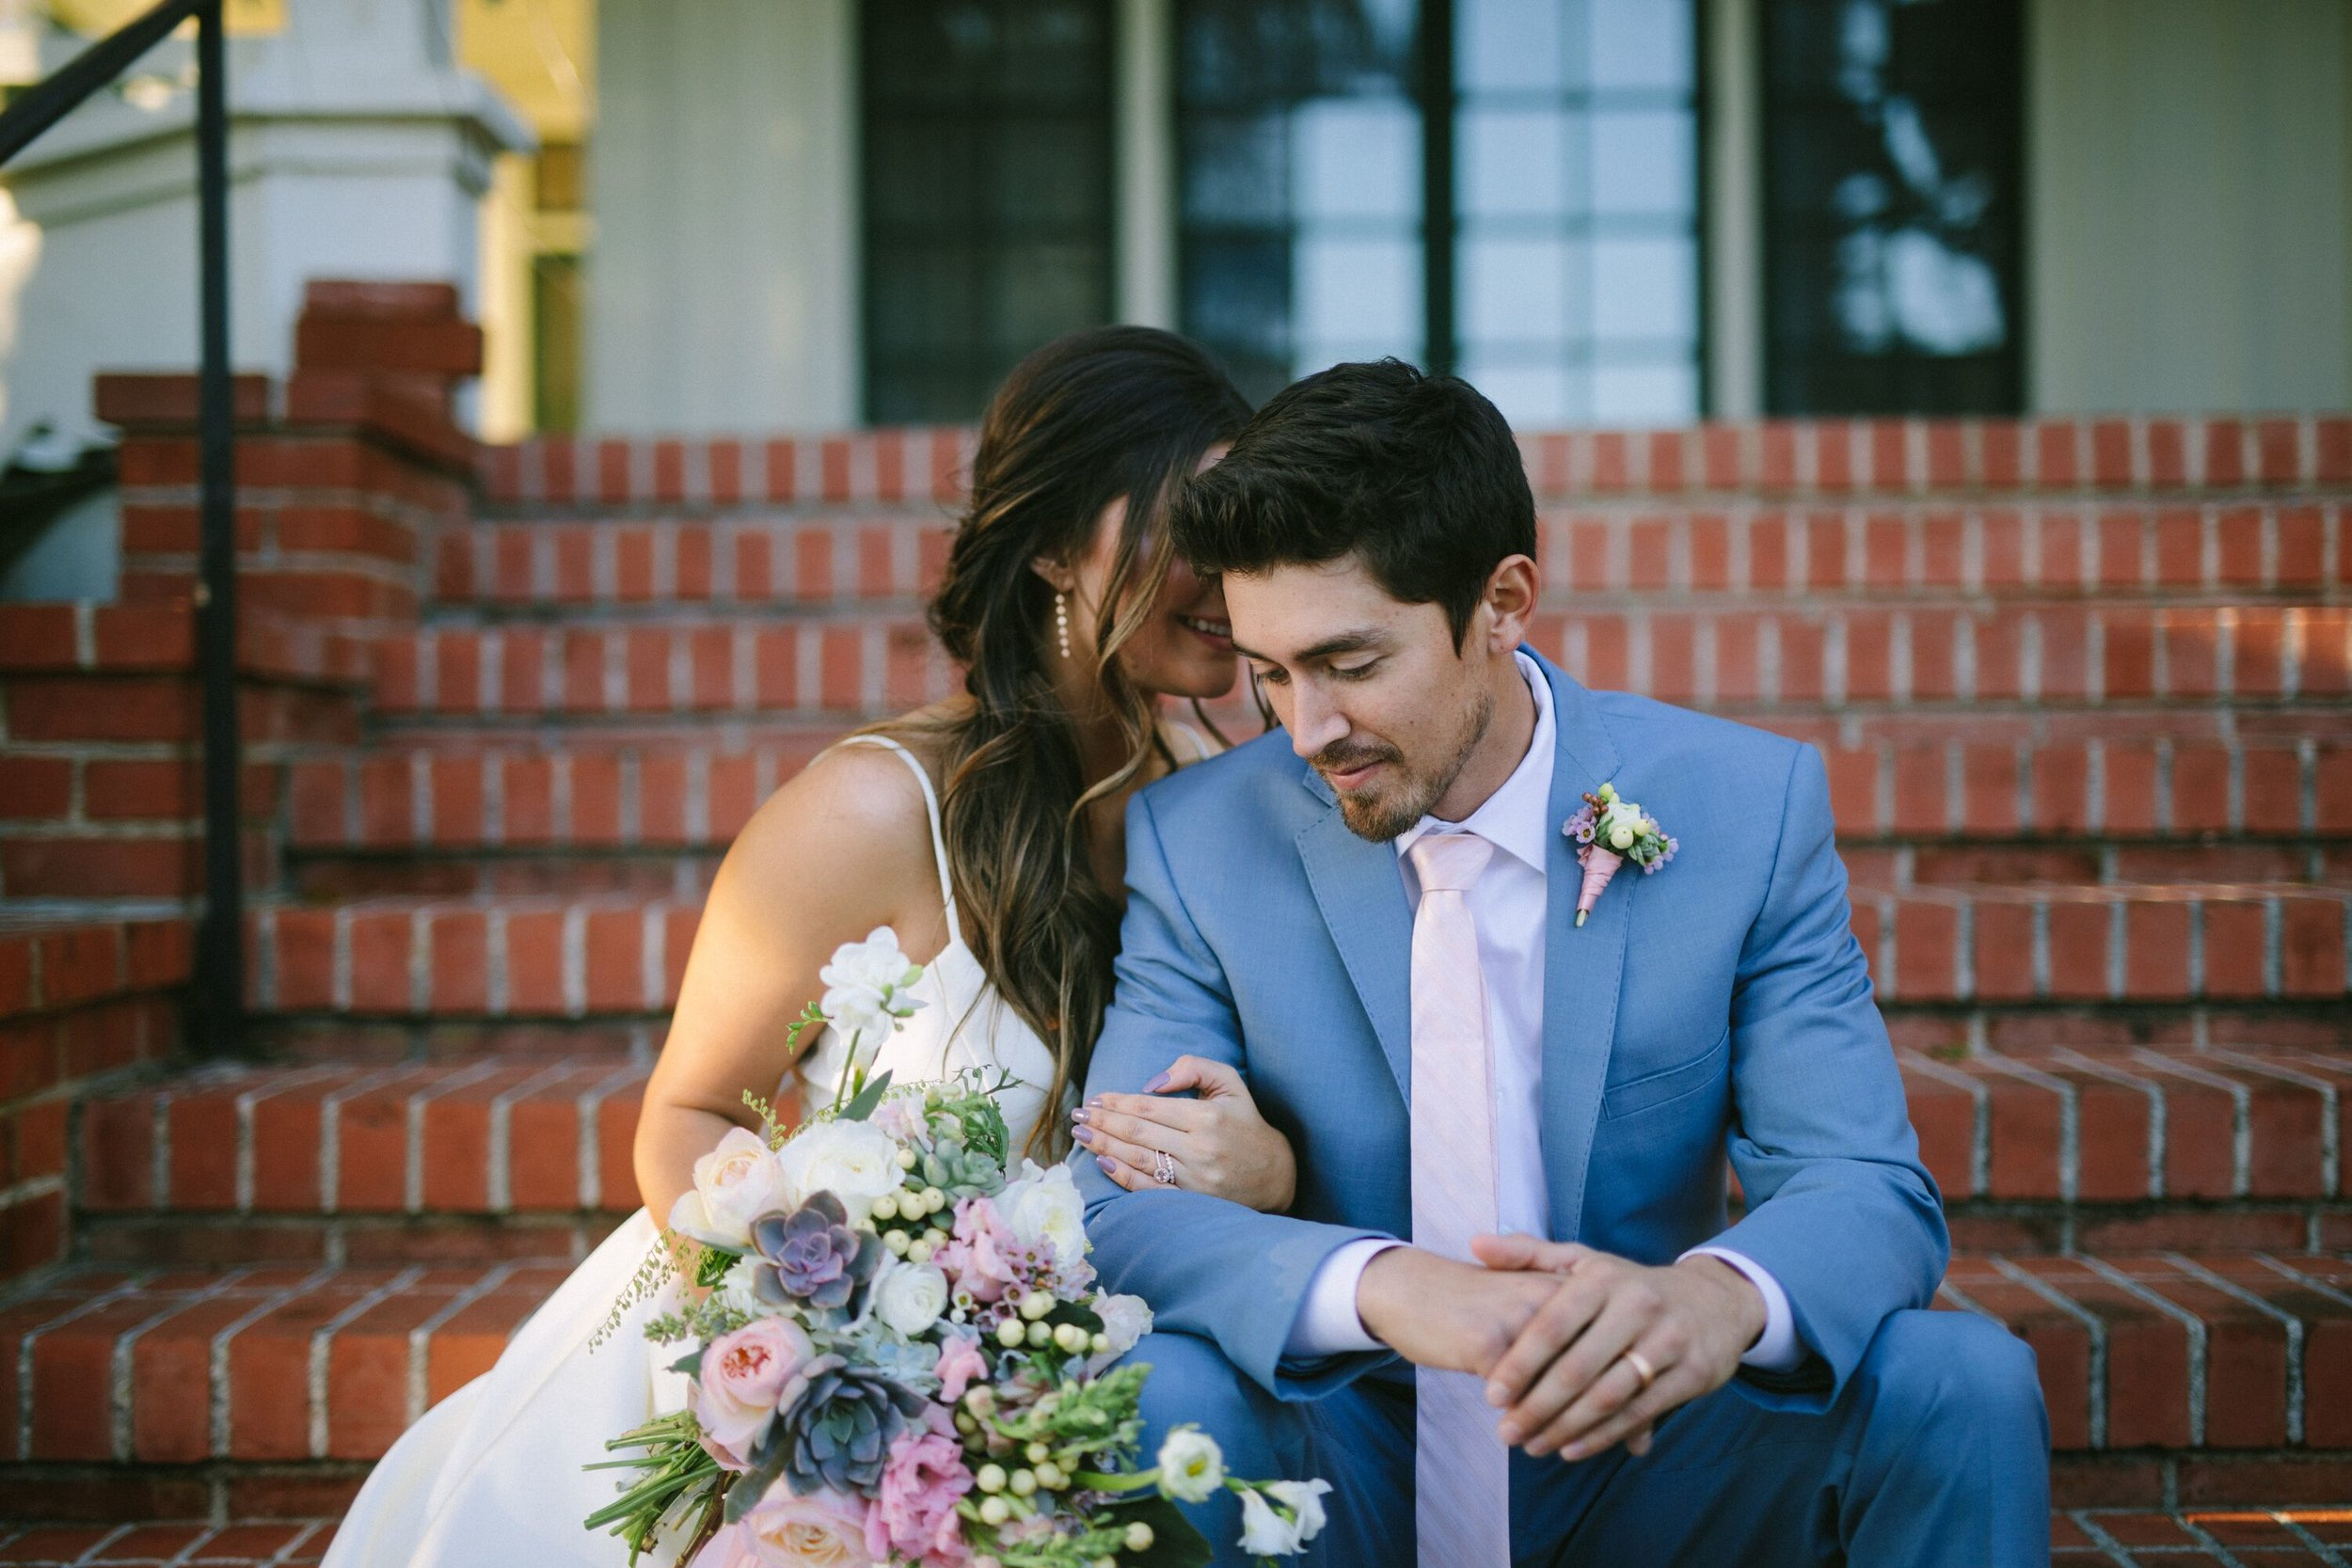 www.santabarbarawedding.com | Photographer: Patrick Ang | Venue: Rancho La Patera & Stow House | Wedding Planner: Elyse Rowen of Elyse Events | Bride and Groom on Reception Steps